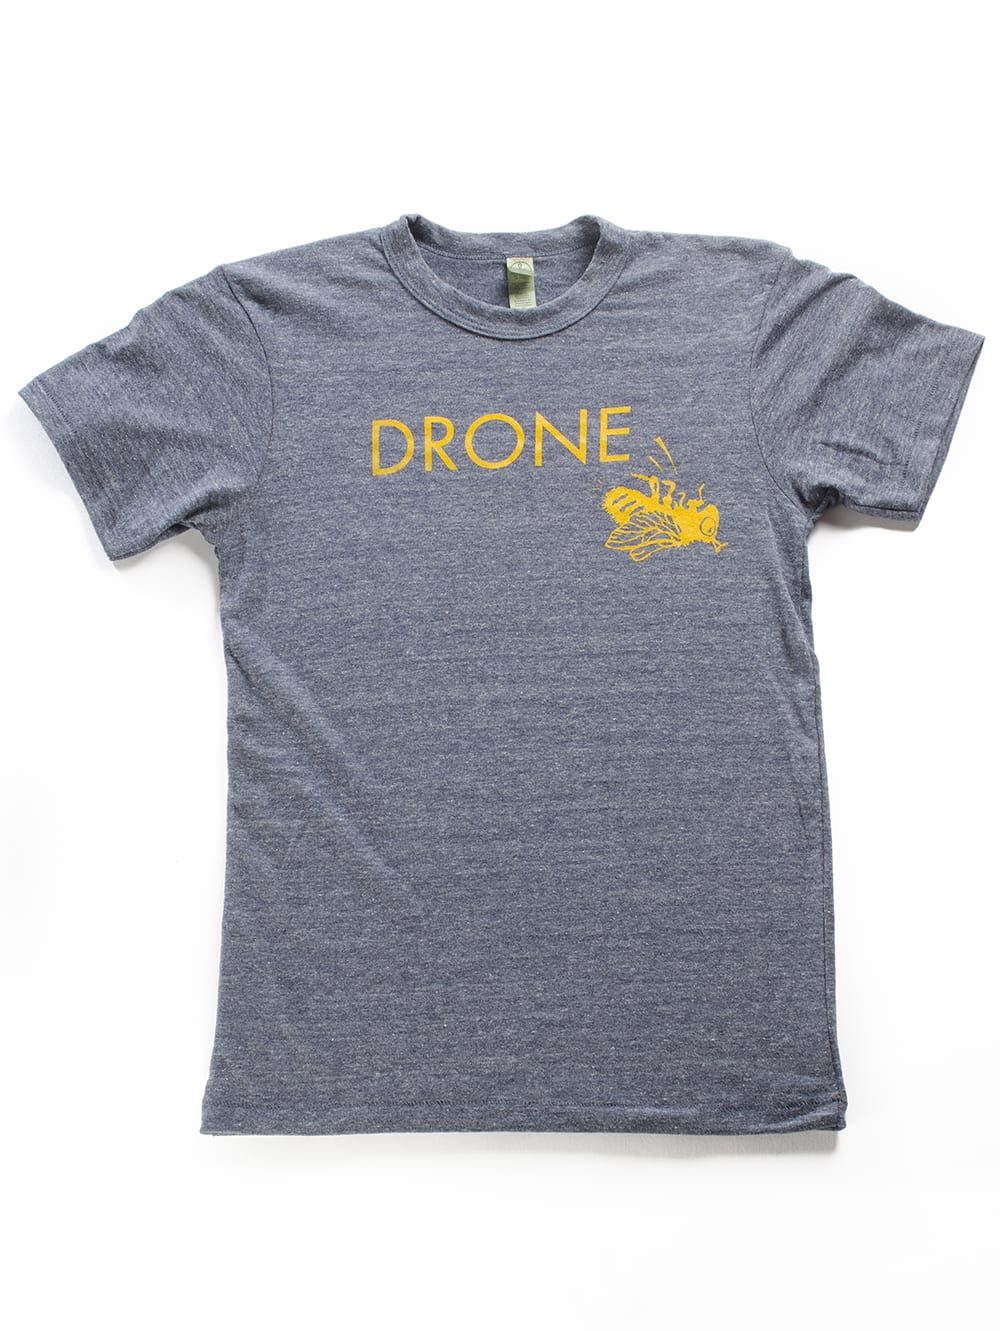 Drone bee t shirt worker b worker b for Local t shirt print shops